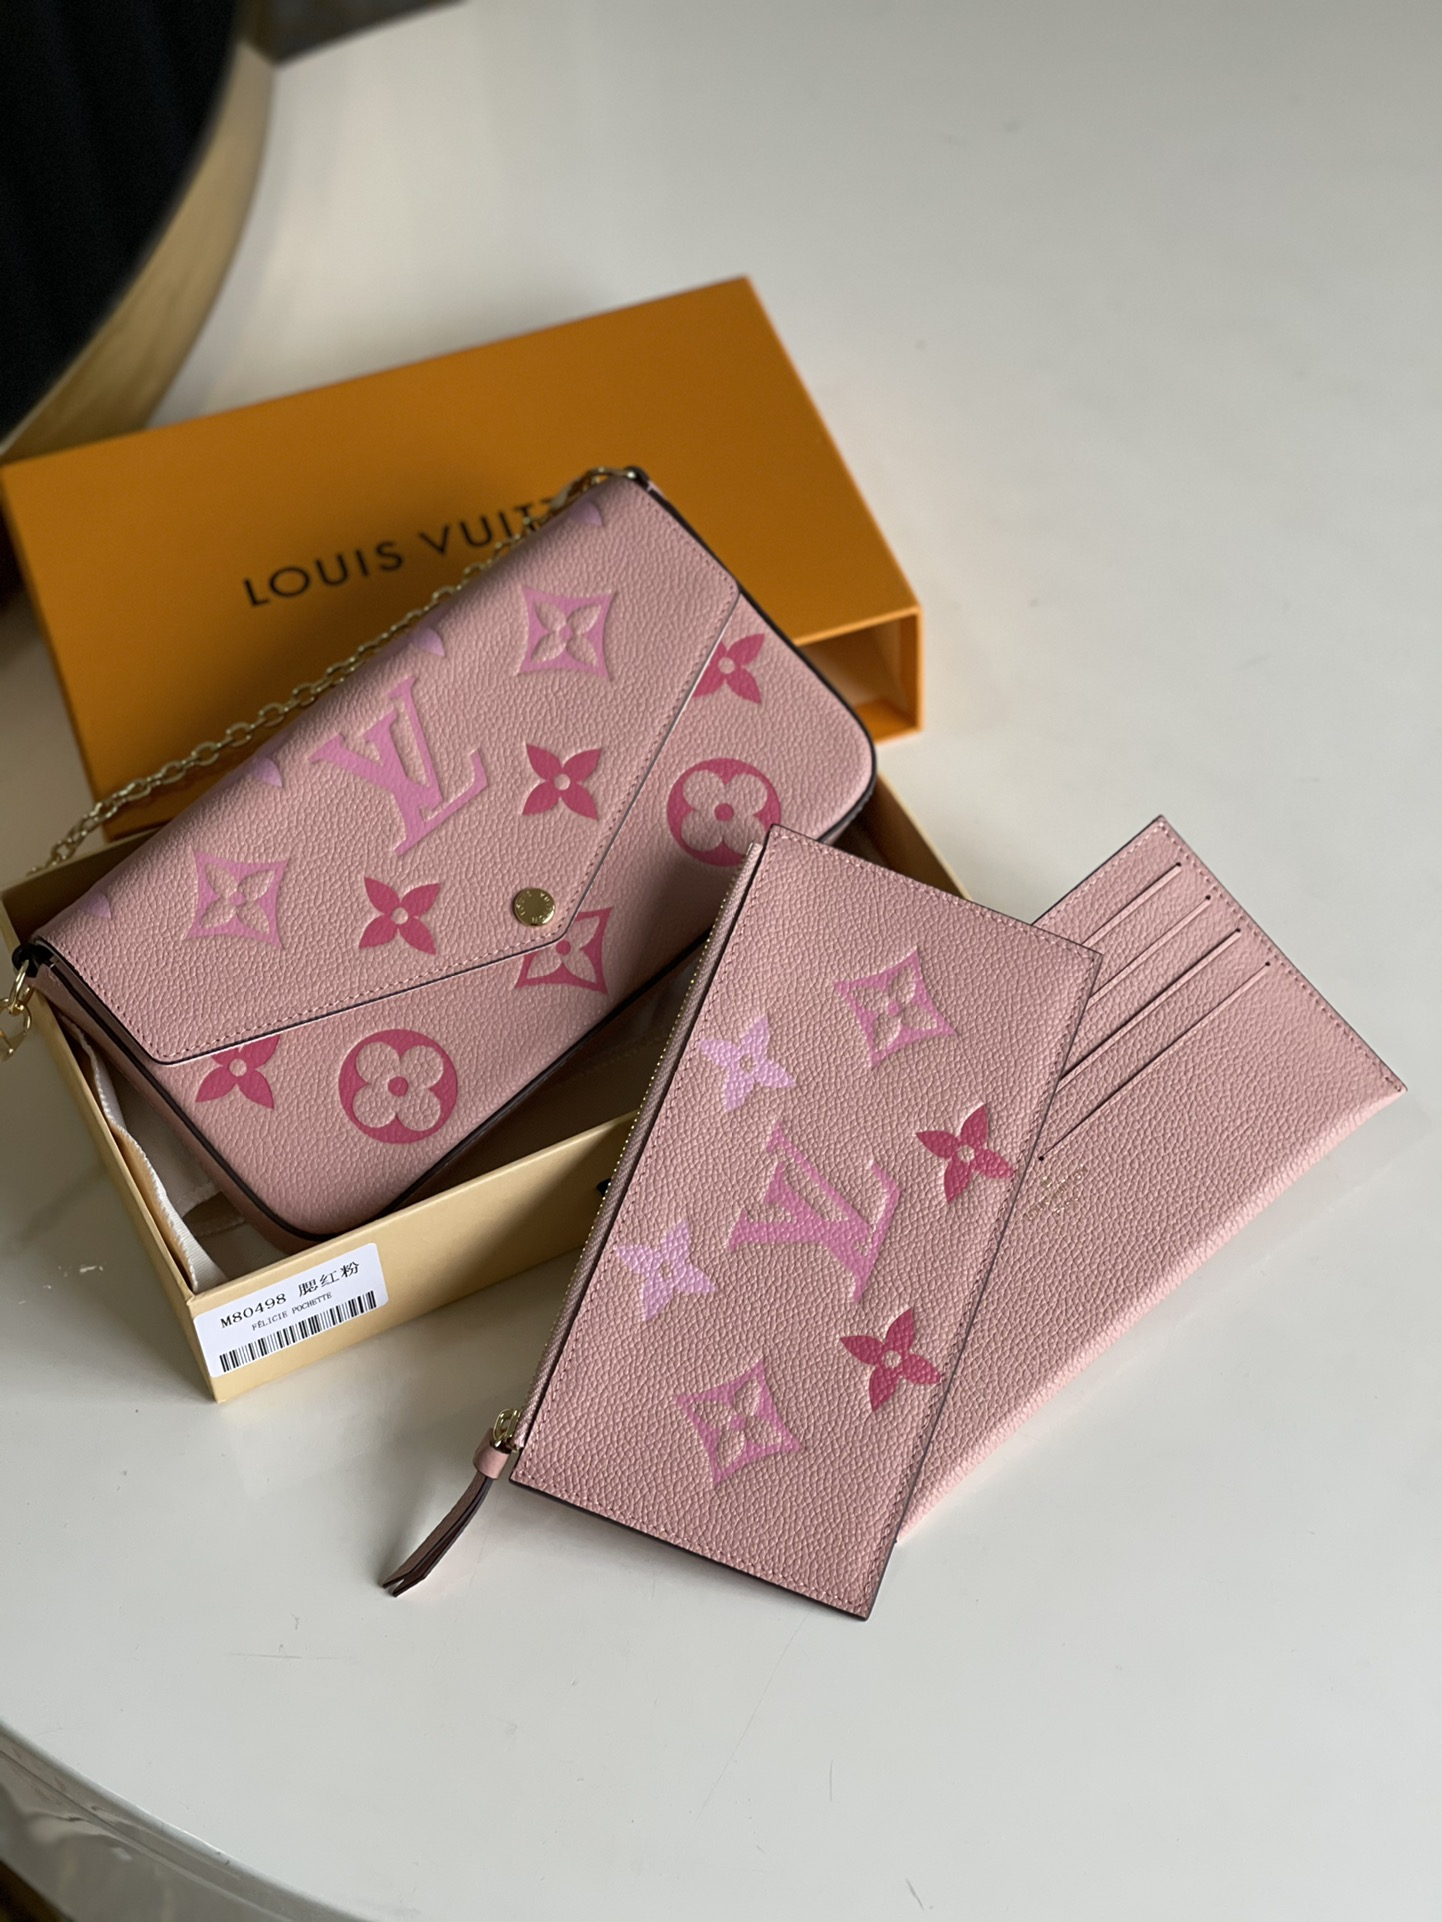 Top Quality Louis Vuitoon M80498 FeLICIE POCHETTE Monogram Empreinte Embossed Supple Grained Cowhide Leather Pink